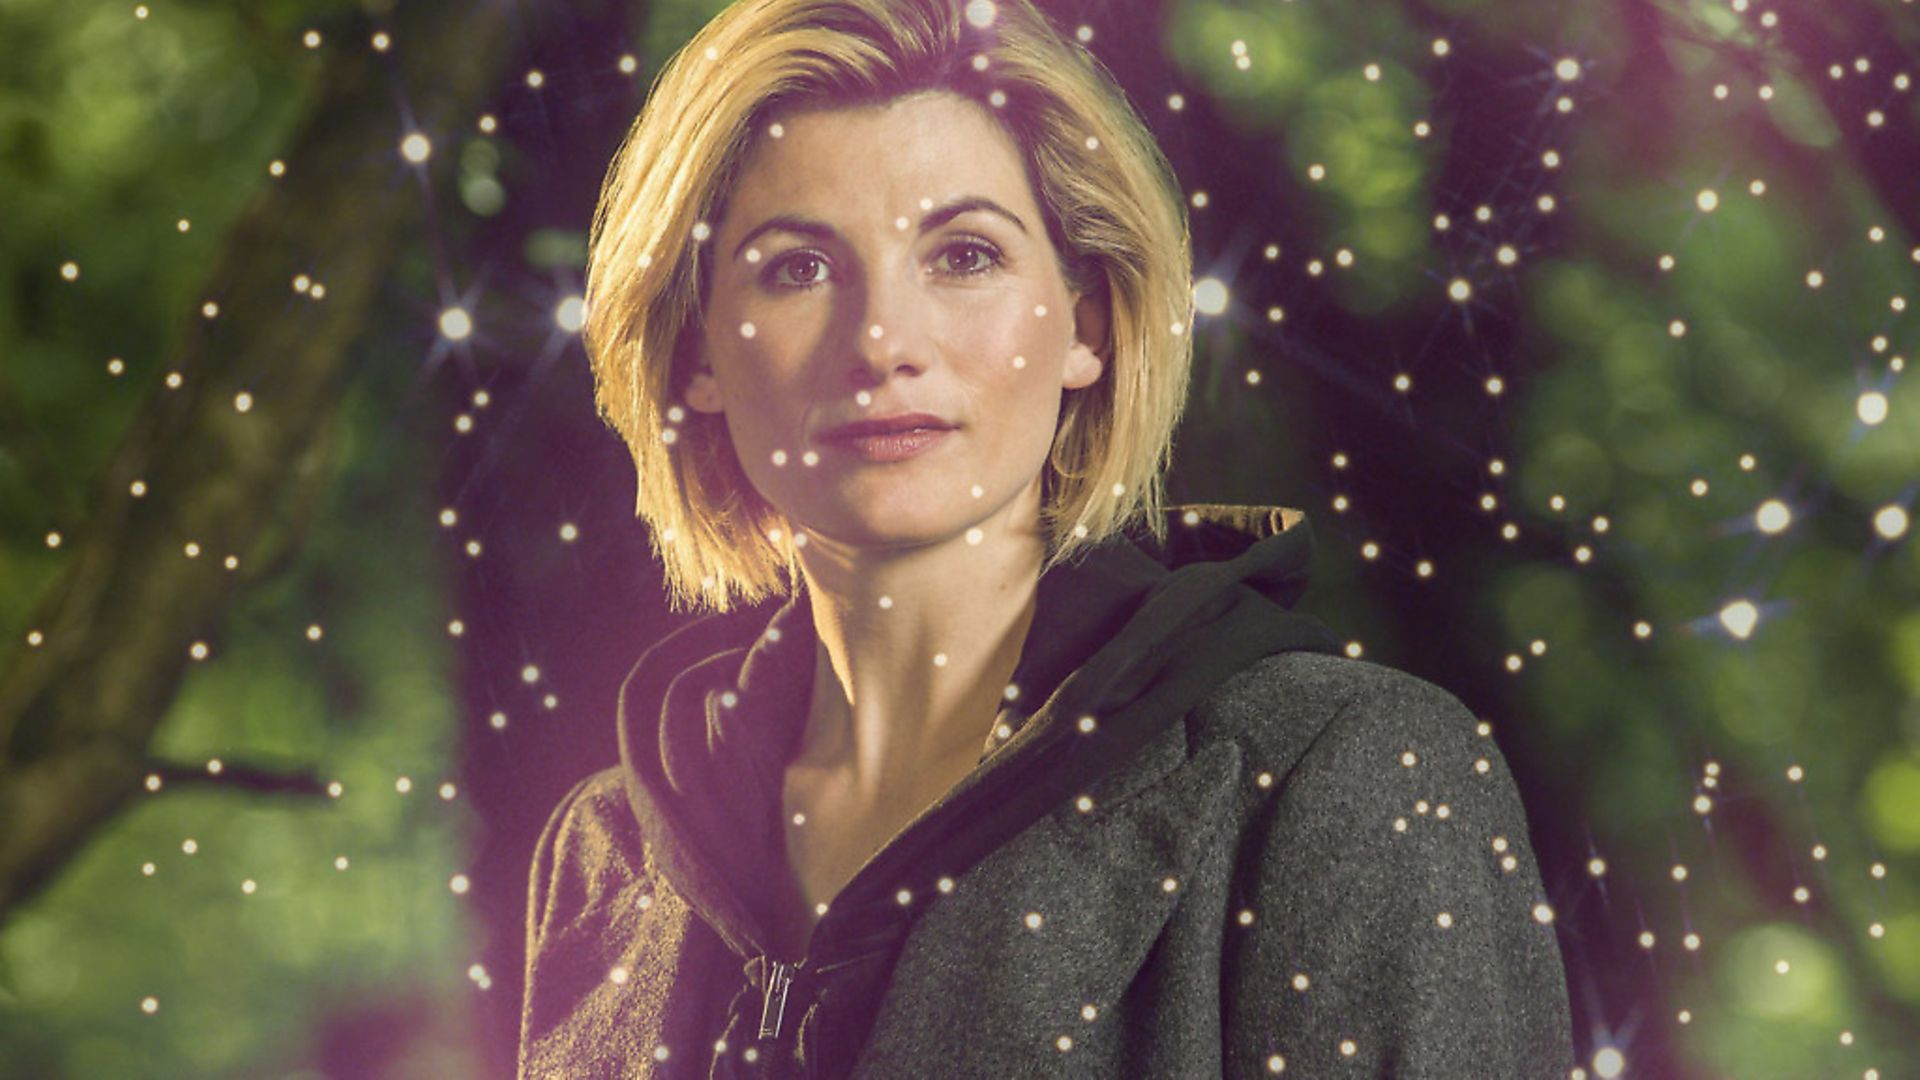 Jodie Whittaker will become the first woman to play the Time Lord in Doctor Who - Credit: PA